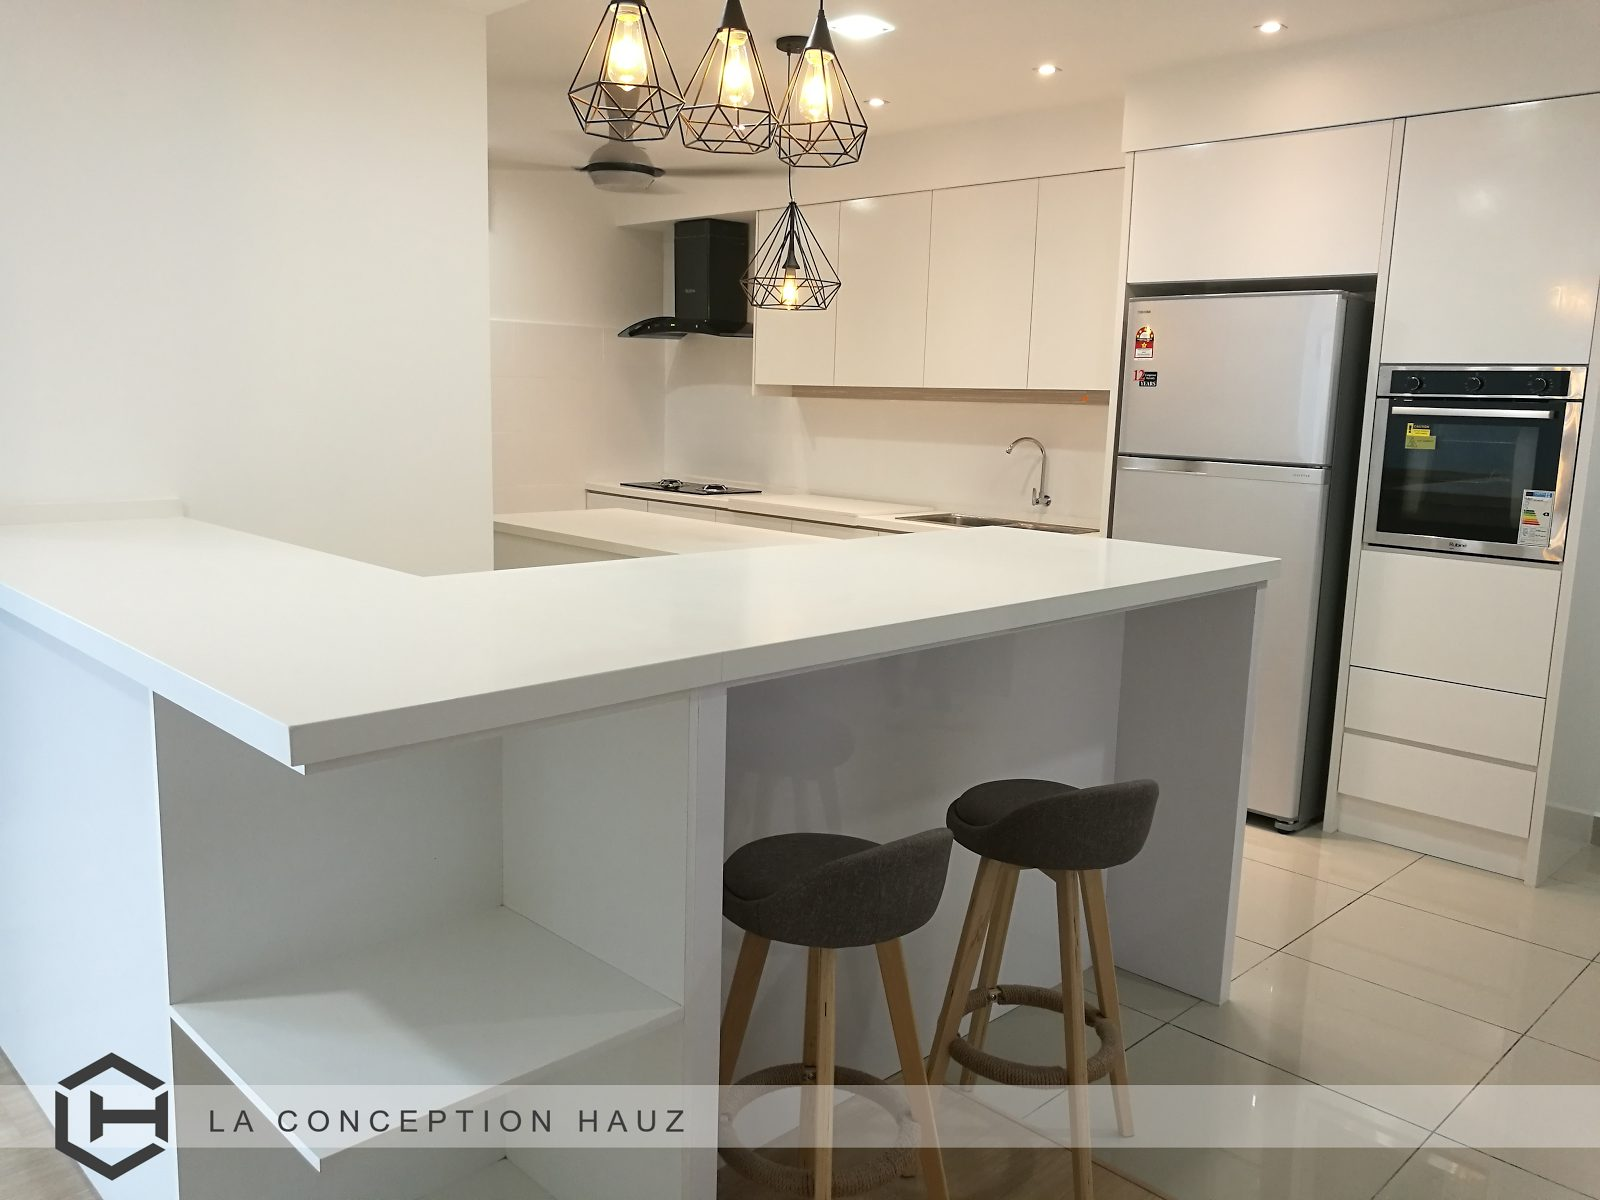 Kitchen Design For Inium In Usj 1 Subang Jaya Project By La Conception